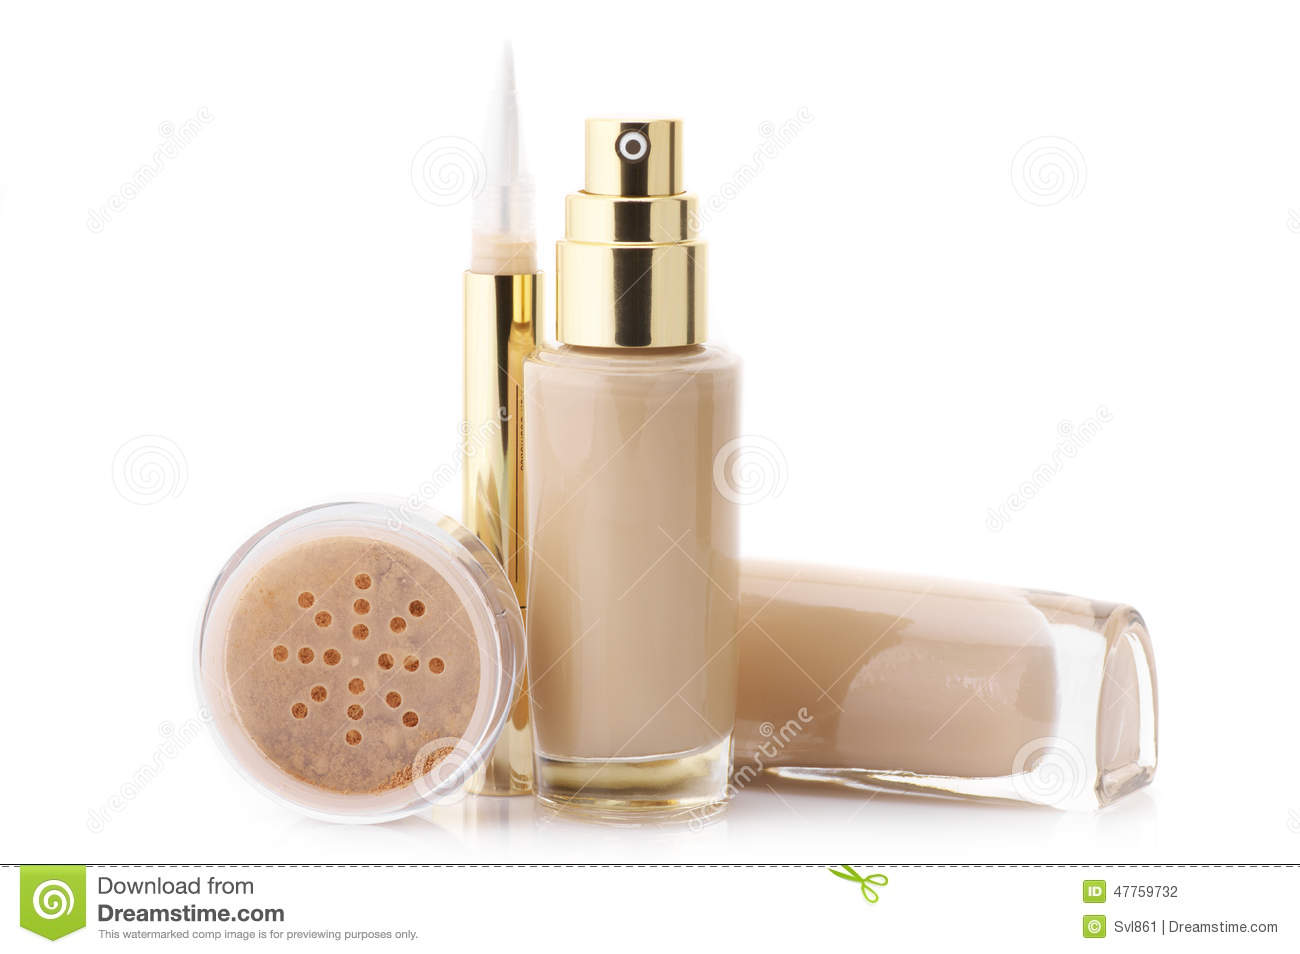 What Is More Nature Liquid Or Powder Make Up